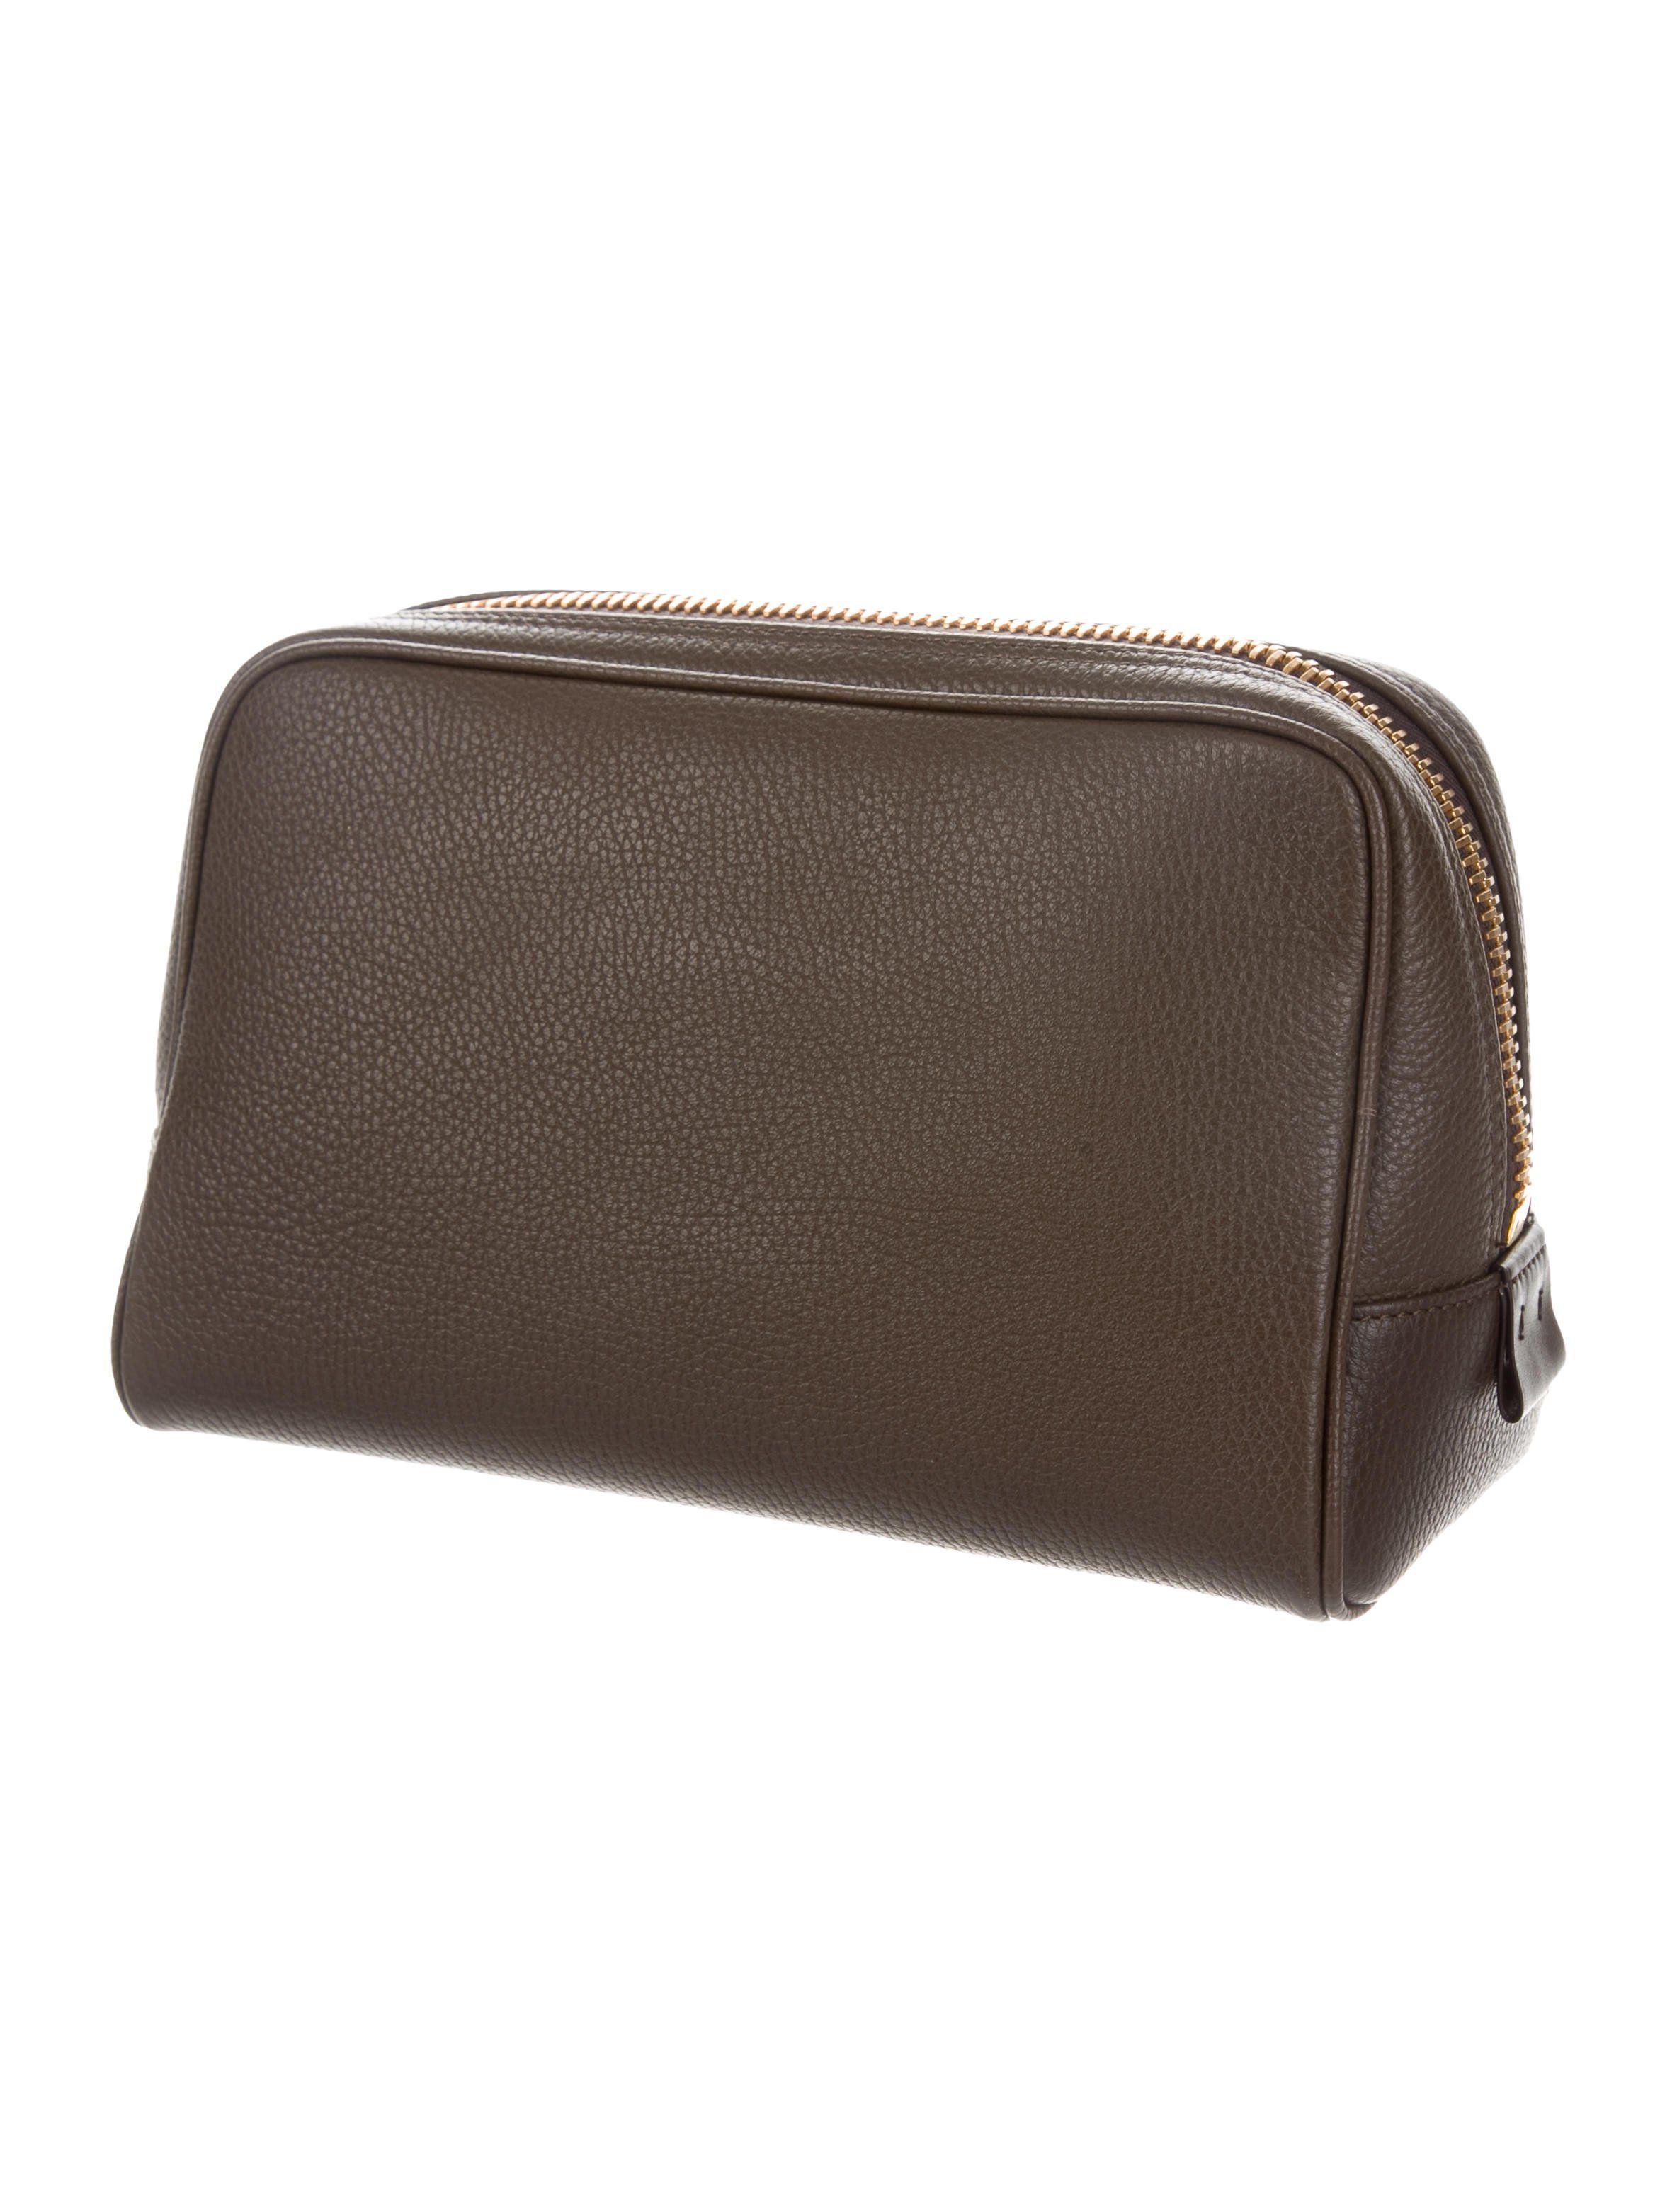 5ef6ed2af620 Men s olive brown pebbled leather Tom Ford pouch with gold-tone hardware